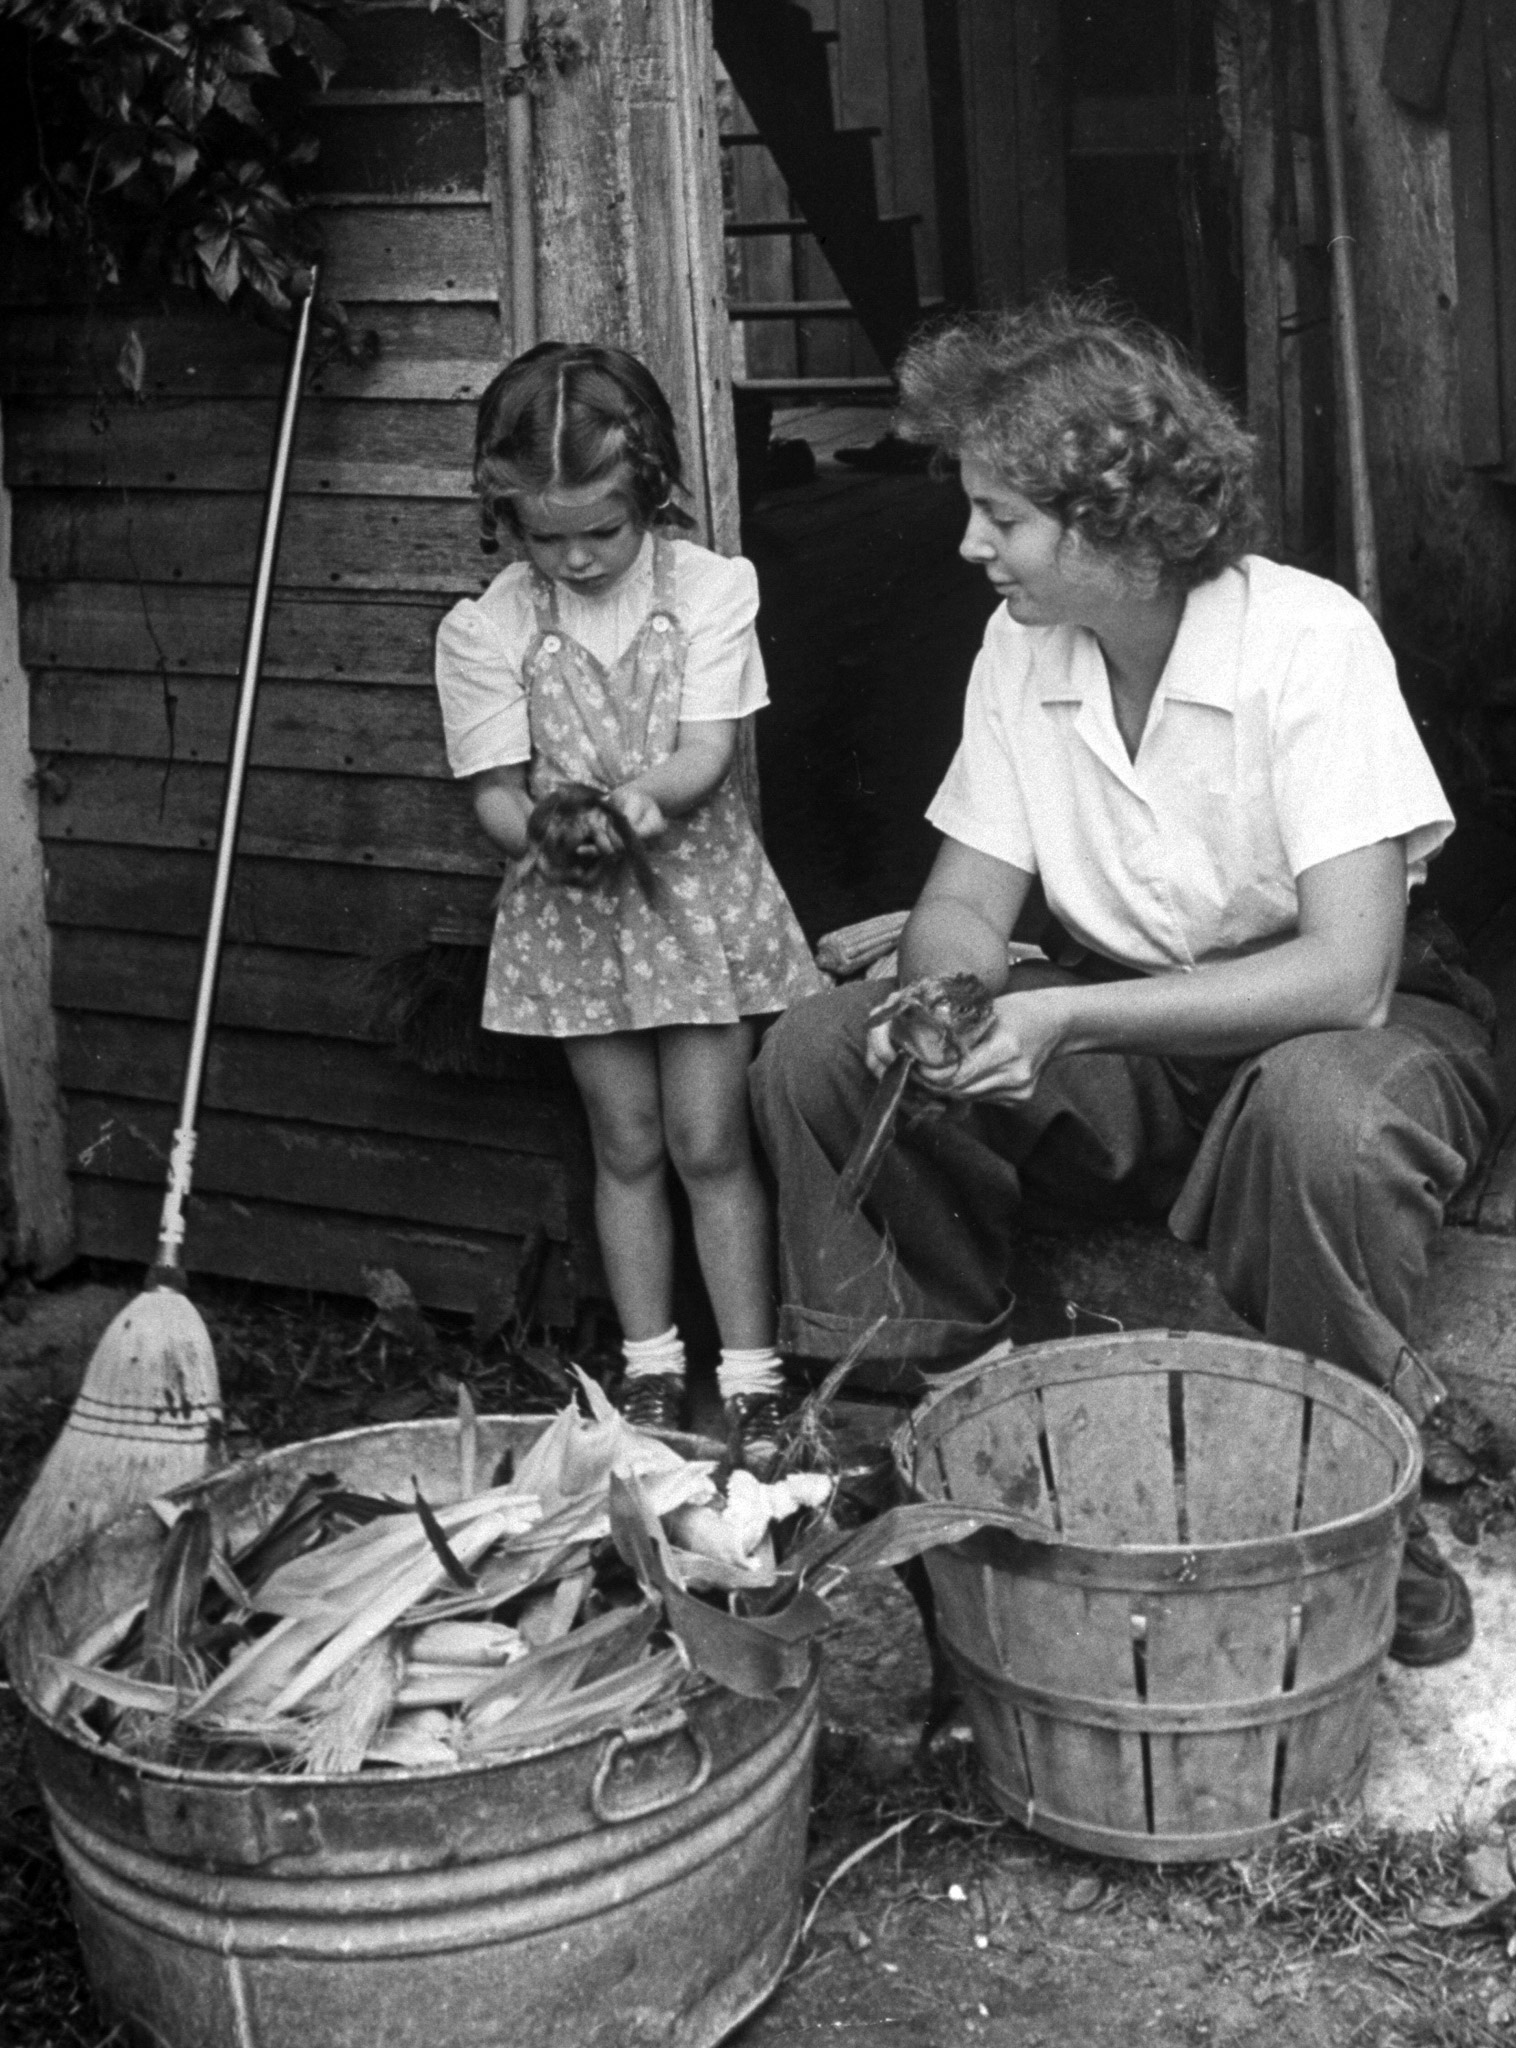 <b>Caption from LIFE.</b> Dorothy Crow, 21, husks corn with little Sandra Edson. Dorothy has a fellowship in International Relations at New York University, is writing her master's thesis.